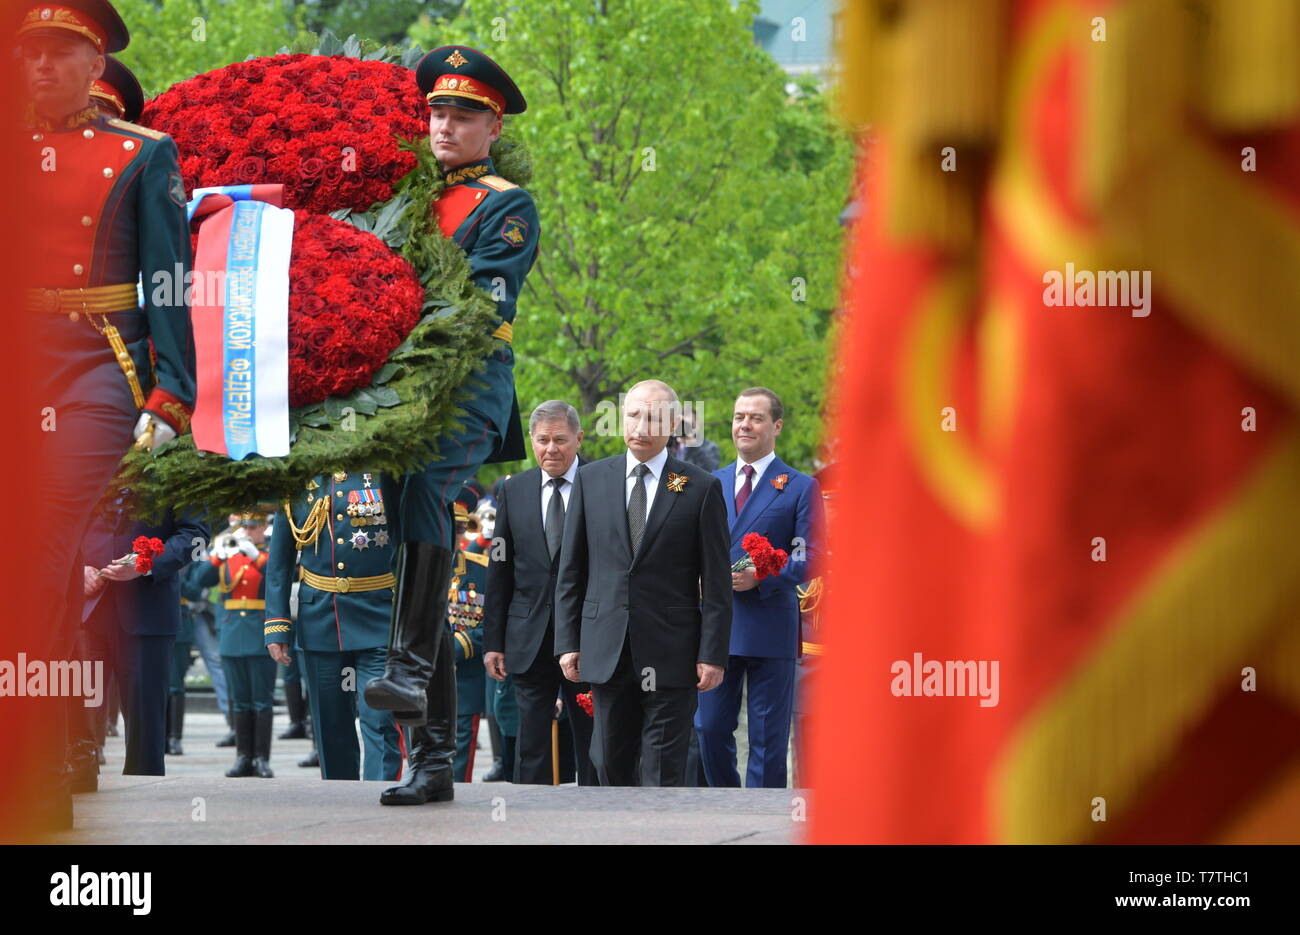 Moscow, Russia. 09th May, 2019. MOSCOW, RUSSIA - MAY 9, 2019: Russia's President Vladimir Putin (C), Russian Supreme Court Chairman Vyacheslav Lebedev, and Russia's Prime Minister Dmitry Medvedev (L-R back) during a ceremony to lay flowers at the Tomb of the Unknown Soldier by the Kremlin Wall during celebrations marking the 74th anniversary of the victory of the Soviet Red Army over Nazi Germany in the Great Patriotic War of 1941-45, the Eastern Front of the Second World War. Alexei Druzhinin/Russian Presidential Press and Information Office/TASS Credit: ITAR-TASS News Agency/Alamy Live News - Stock Image